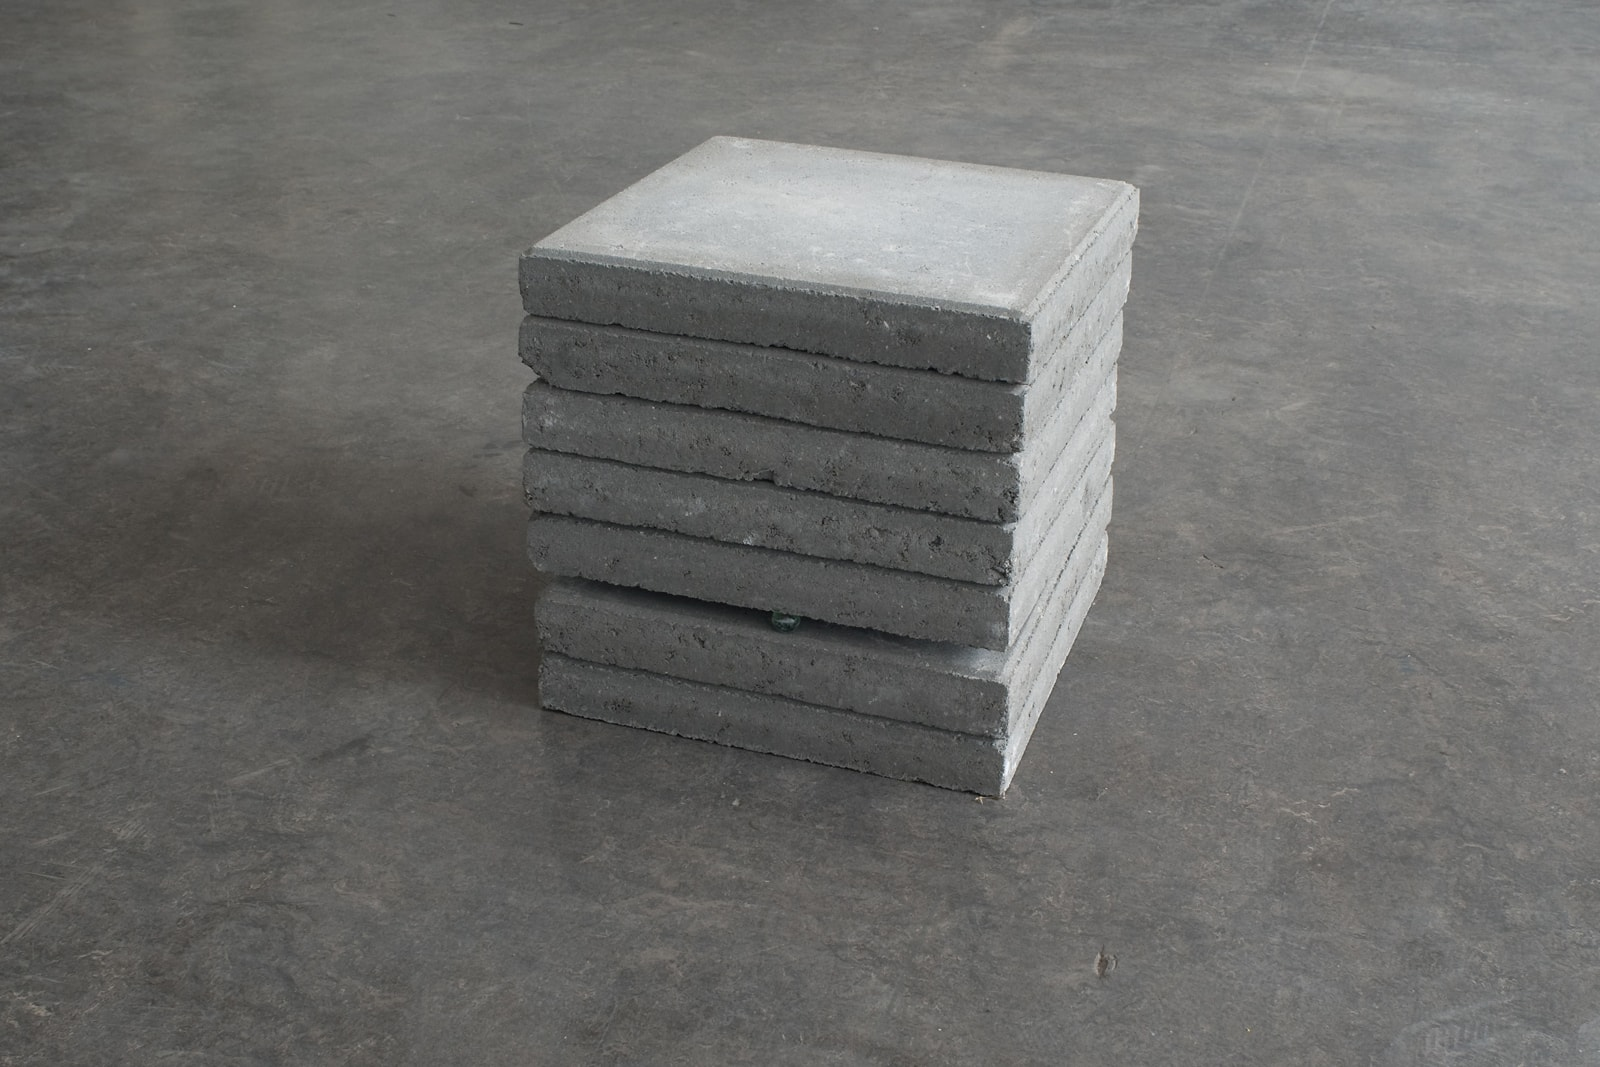 Untitled, Martijn in 't Veld, 2011, paving stones, glass marble